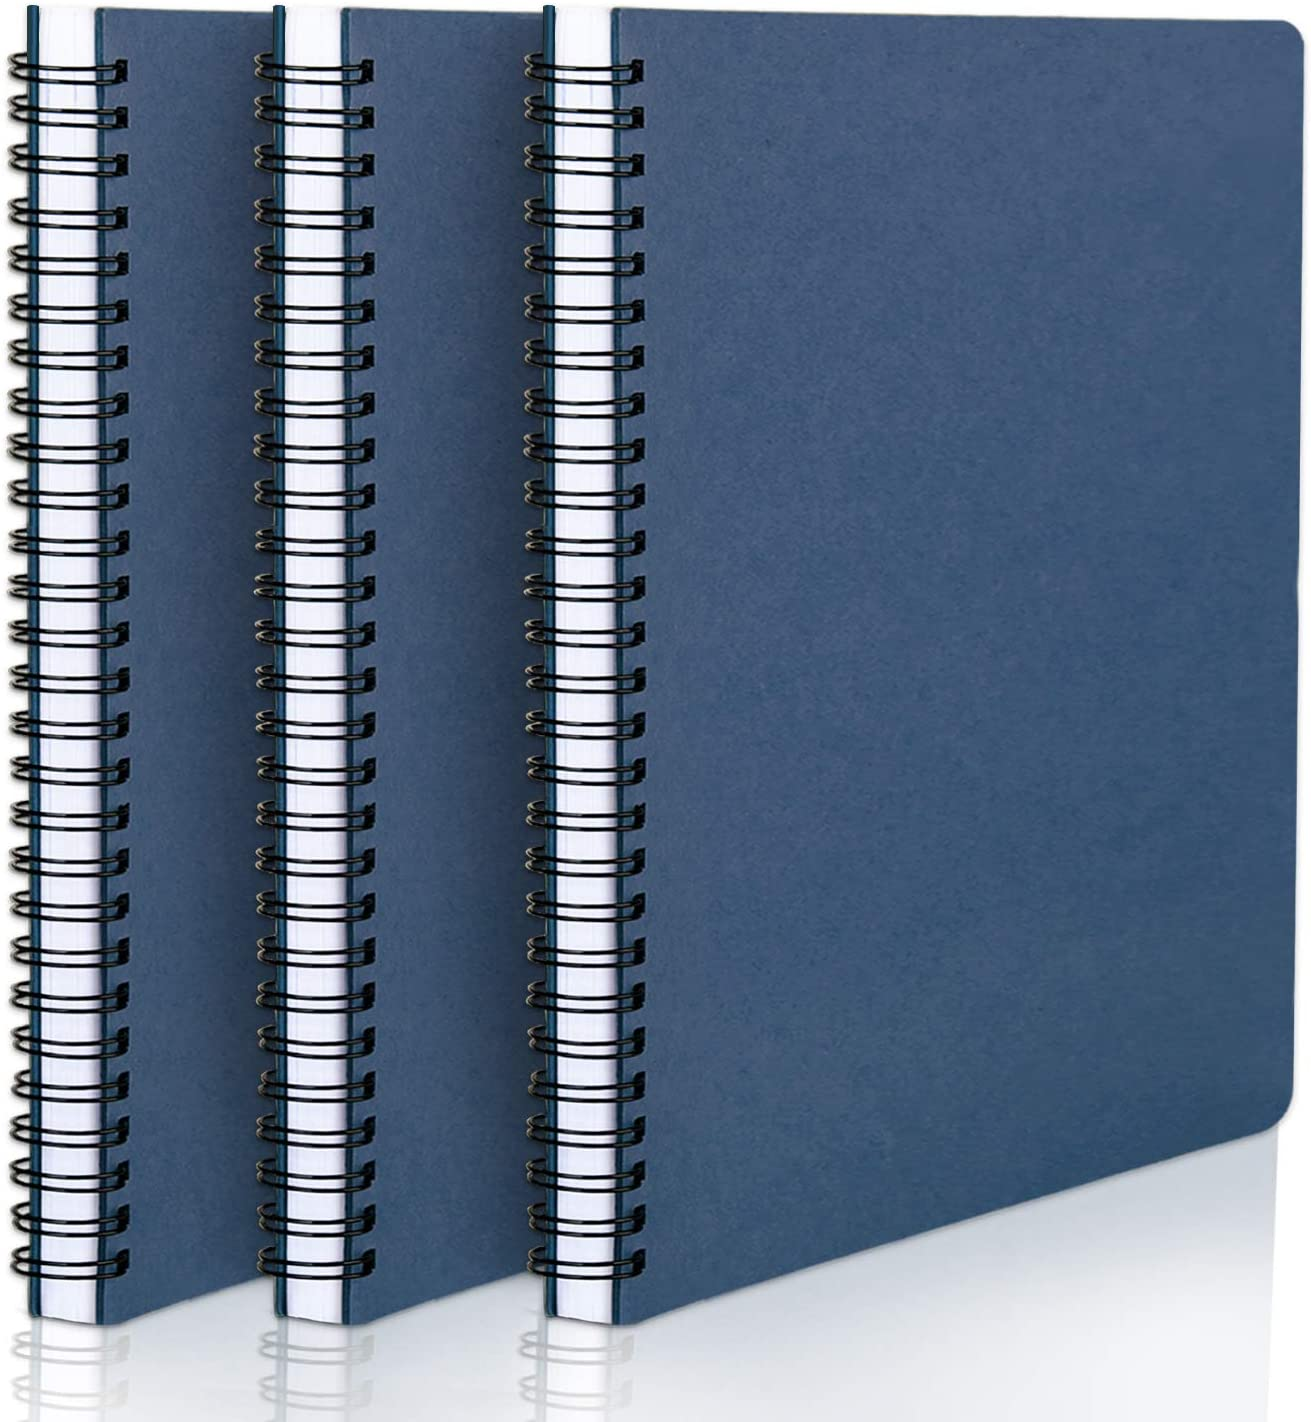 Hardcover Popular brand in the world Spiral Ruled Free Shipping New Notebook EUSOAR 5.5x8.3